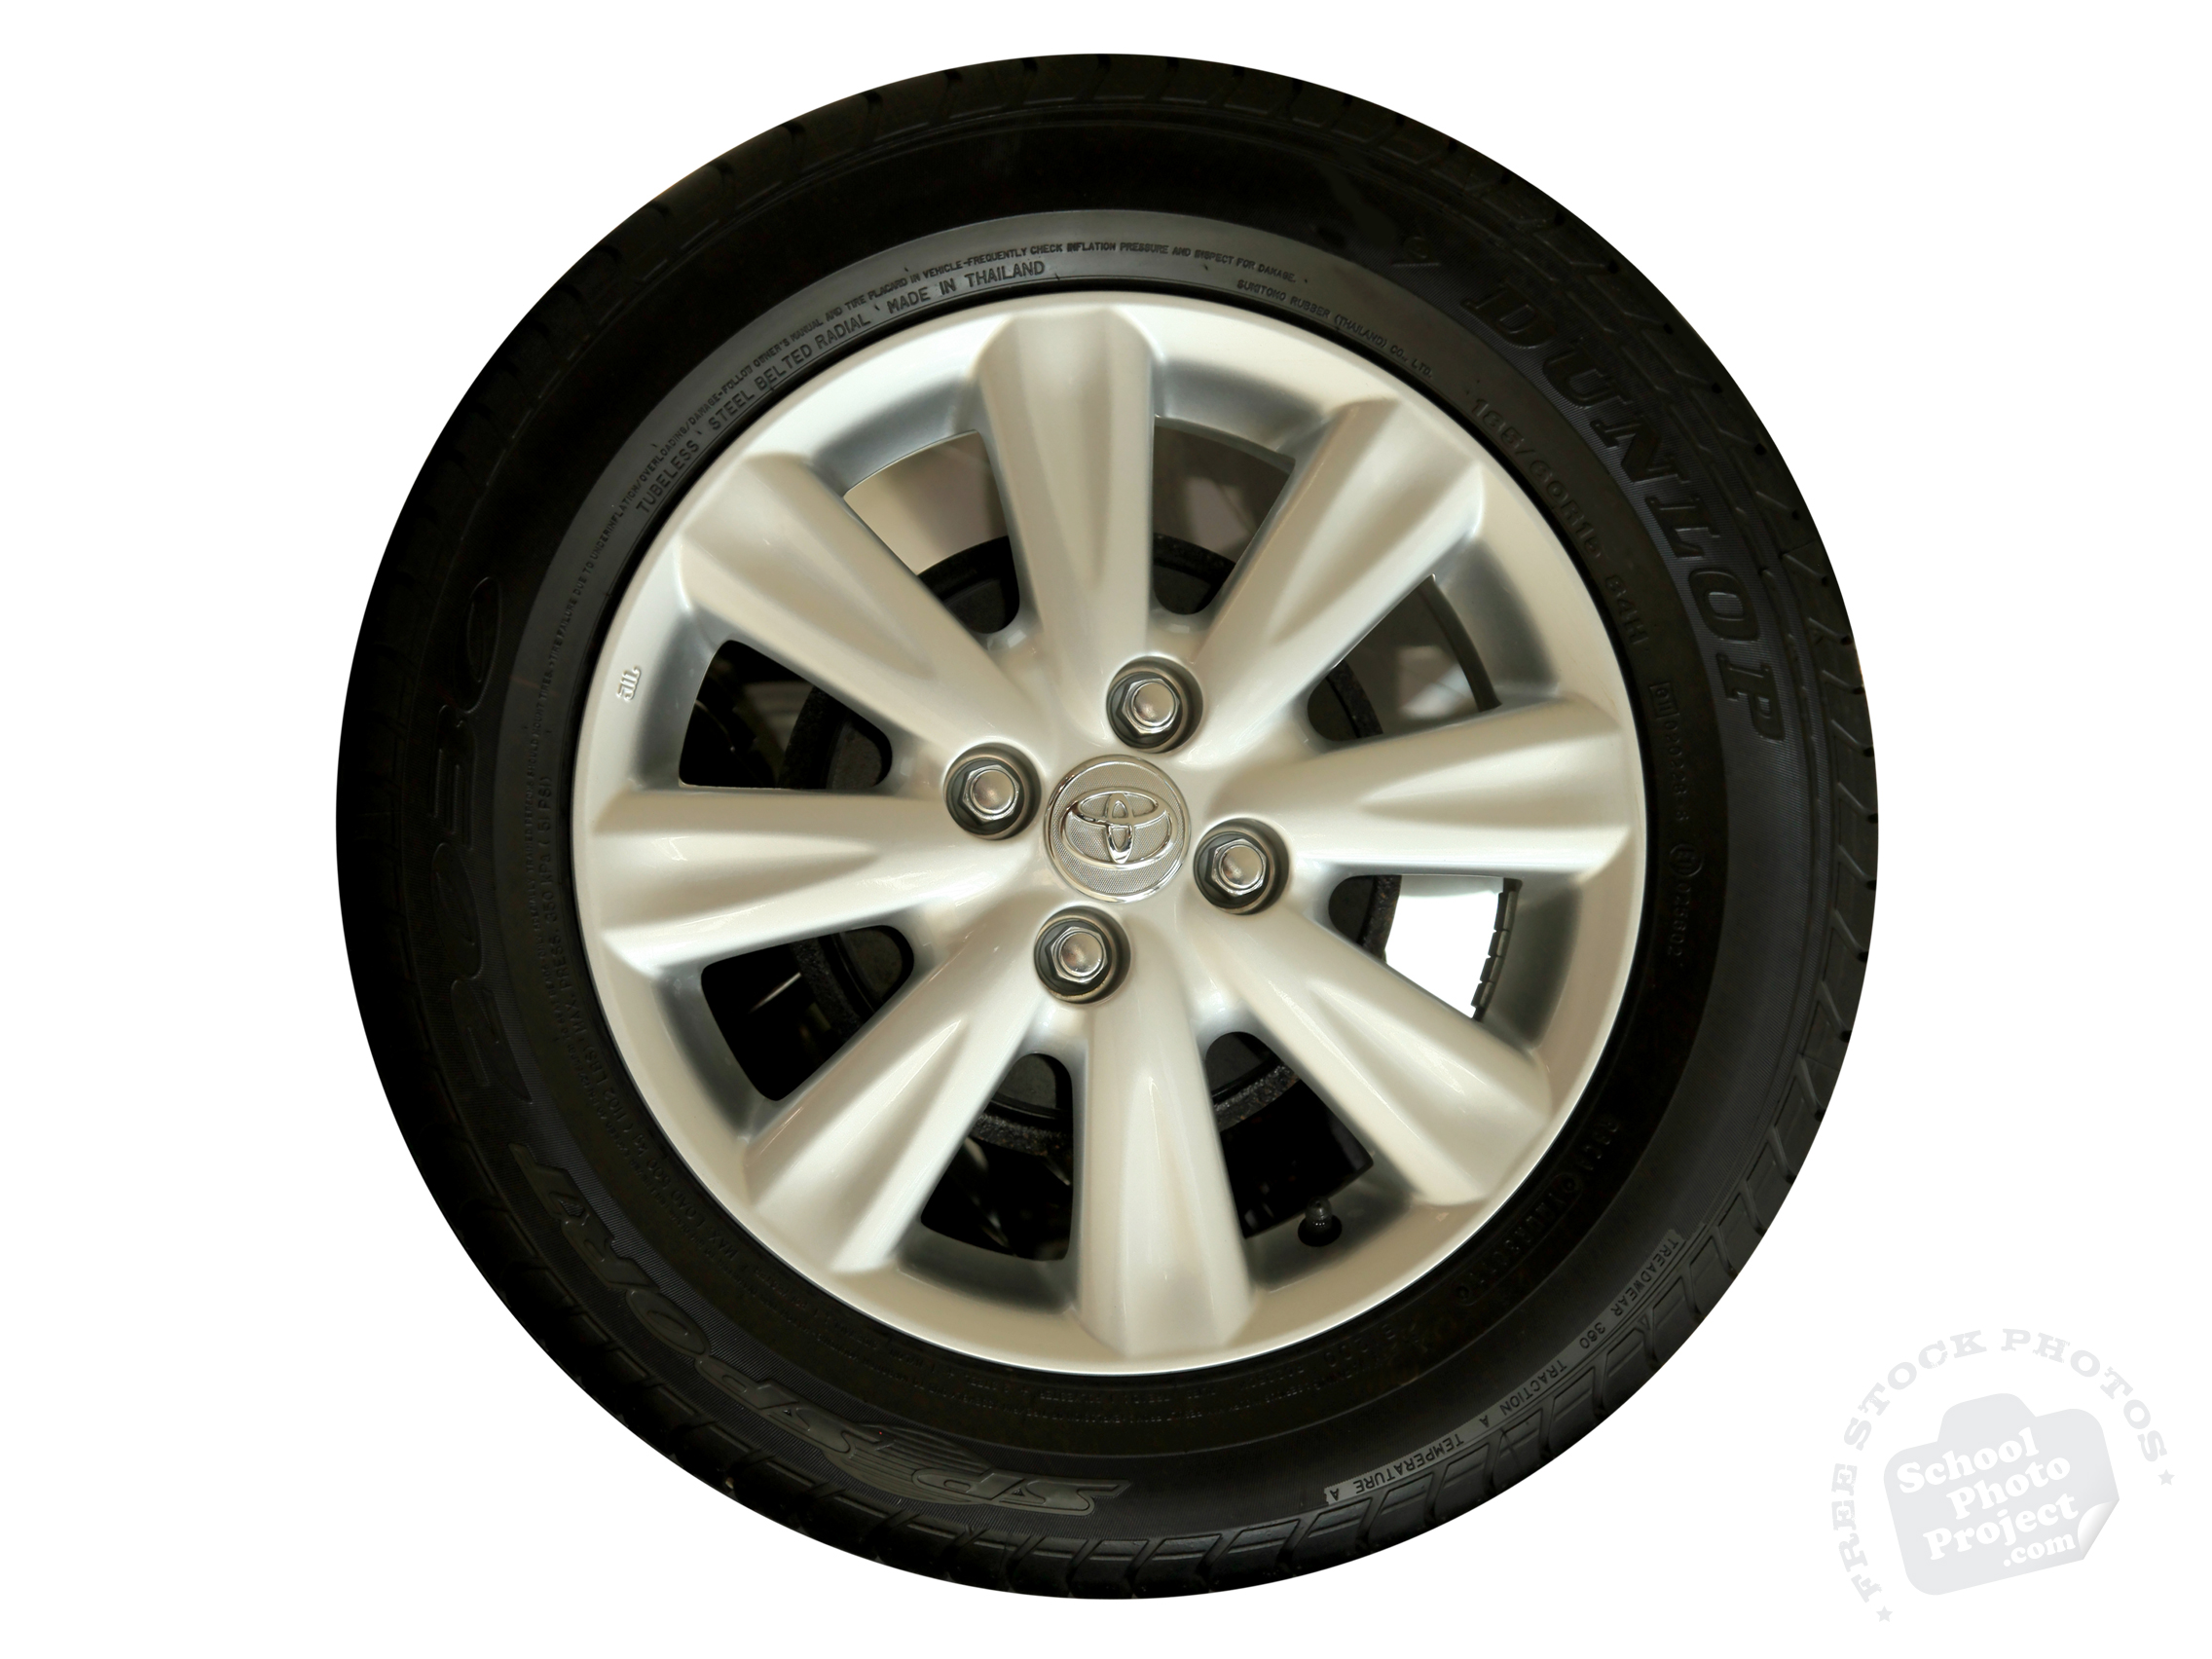 Car Tire Free Stock Photo Image Picture Dunlop Car Tyre Royalty